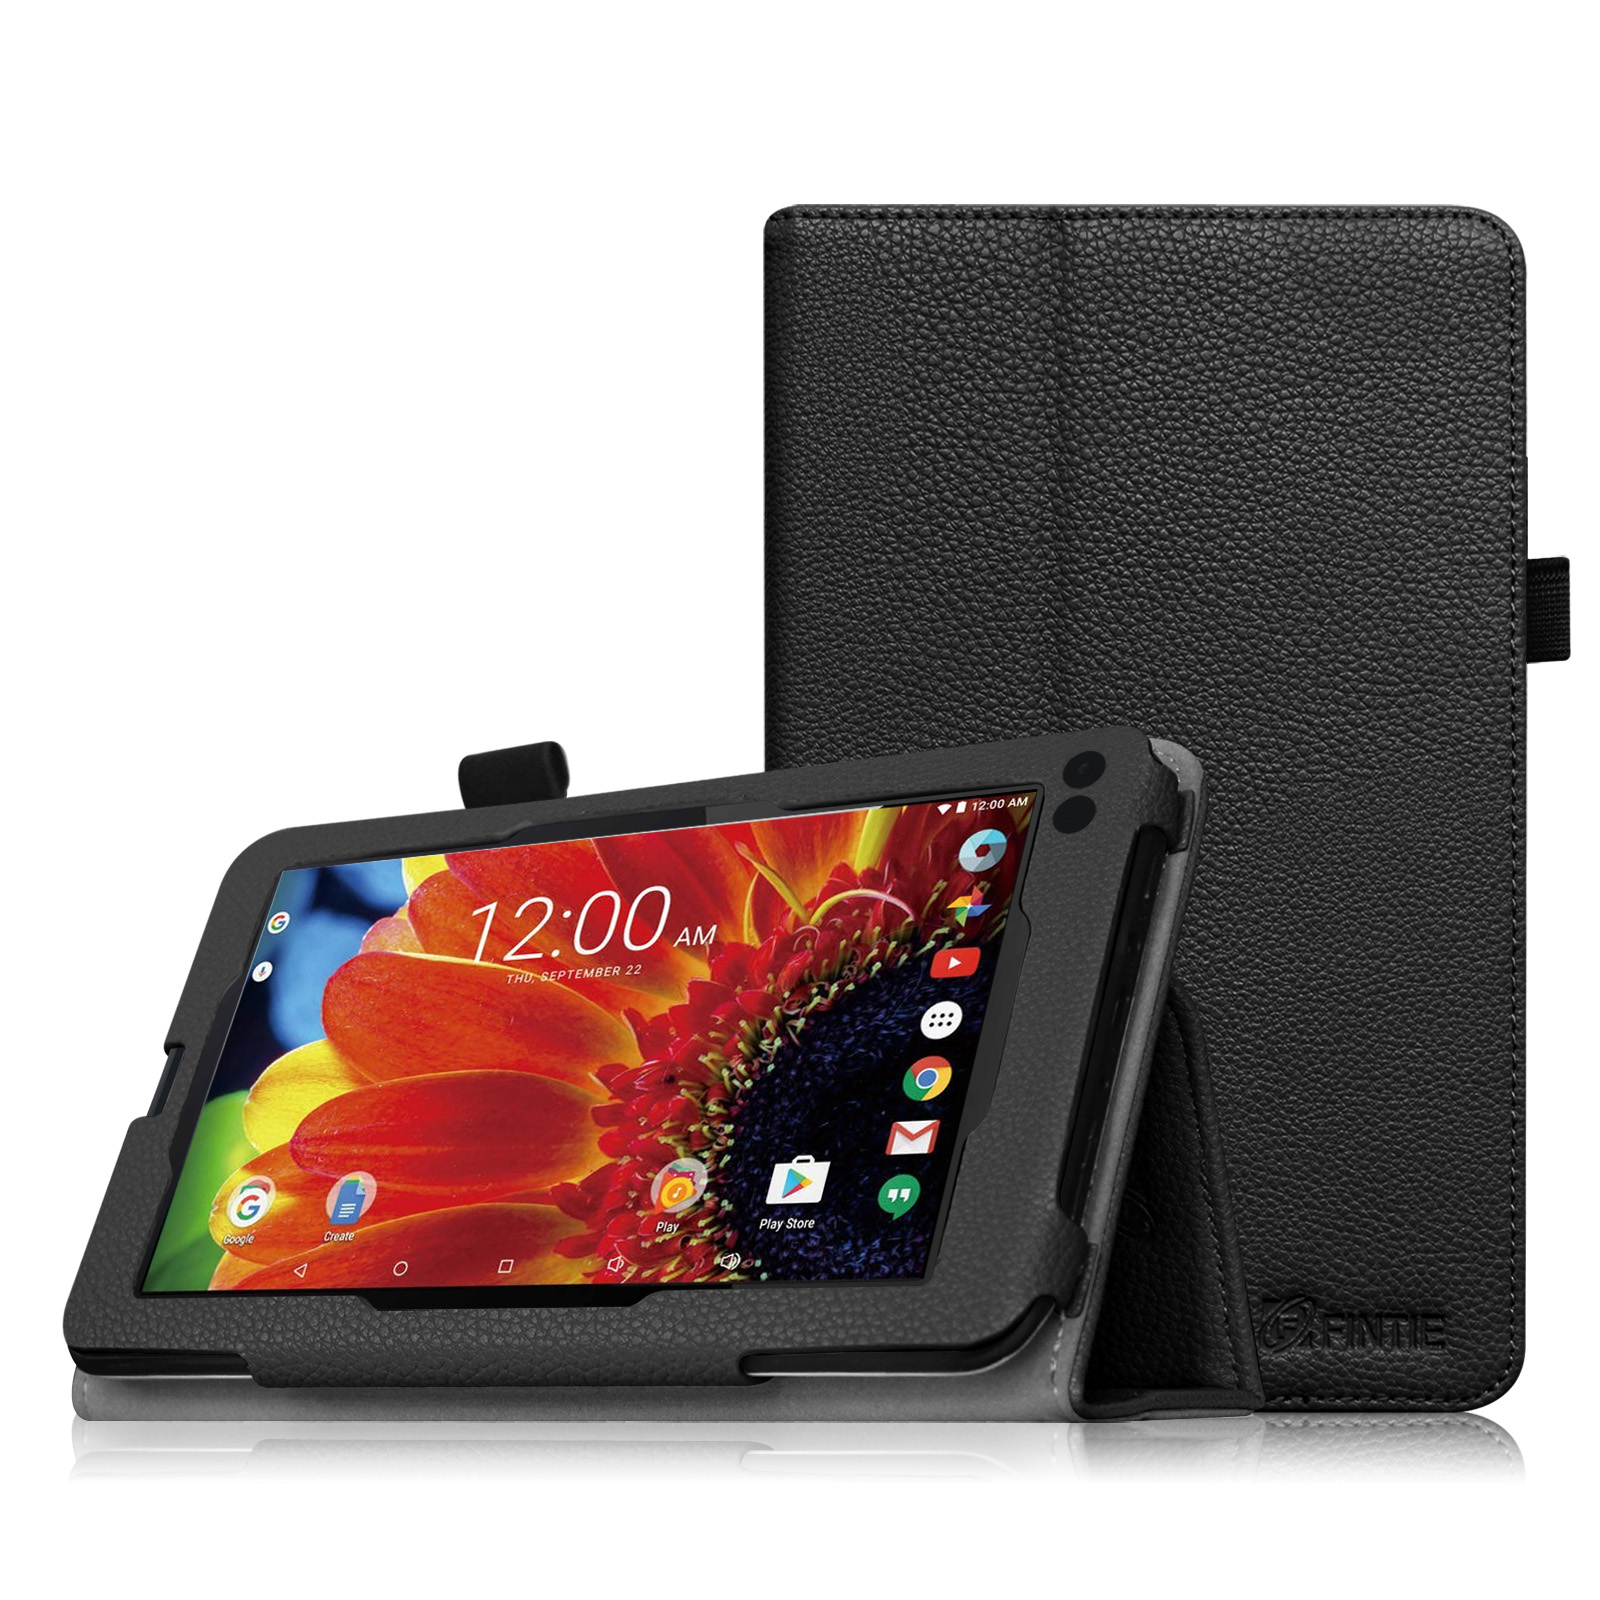 "Fintie PU Leather Case Folio Cover for RCA 7"" Voyager III / Voyager II / Voyager Pro Tablet, Black"